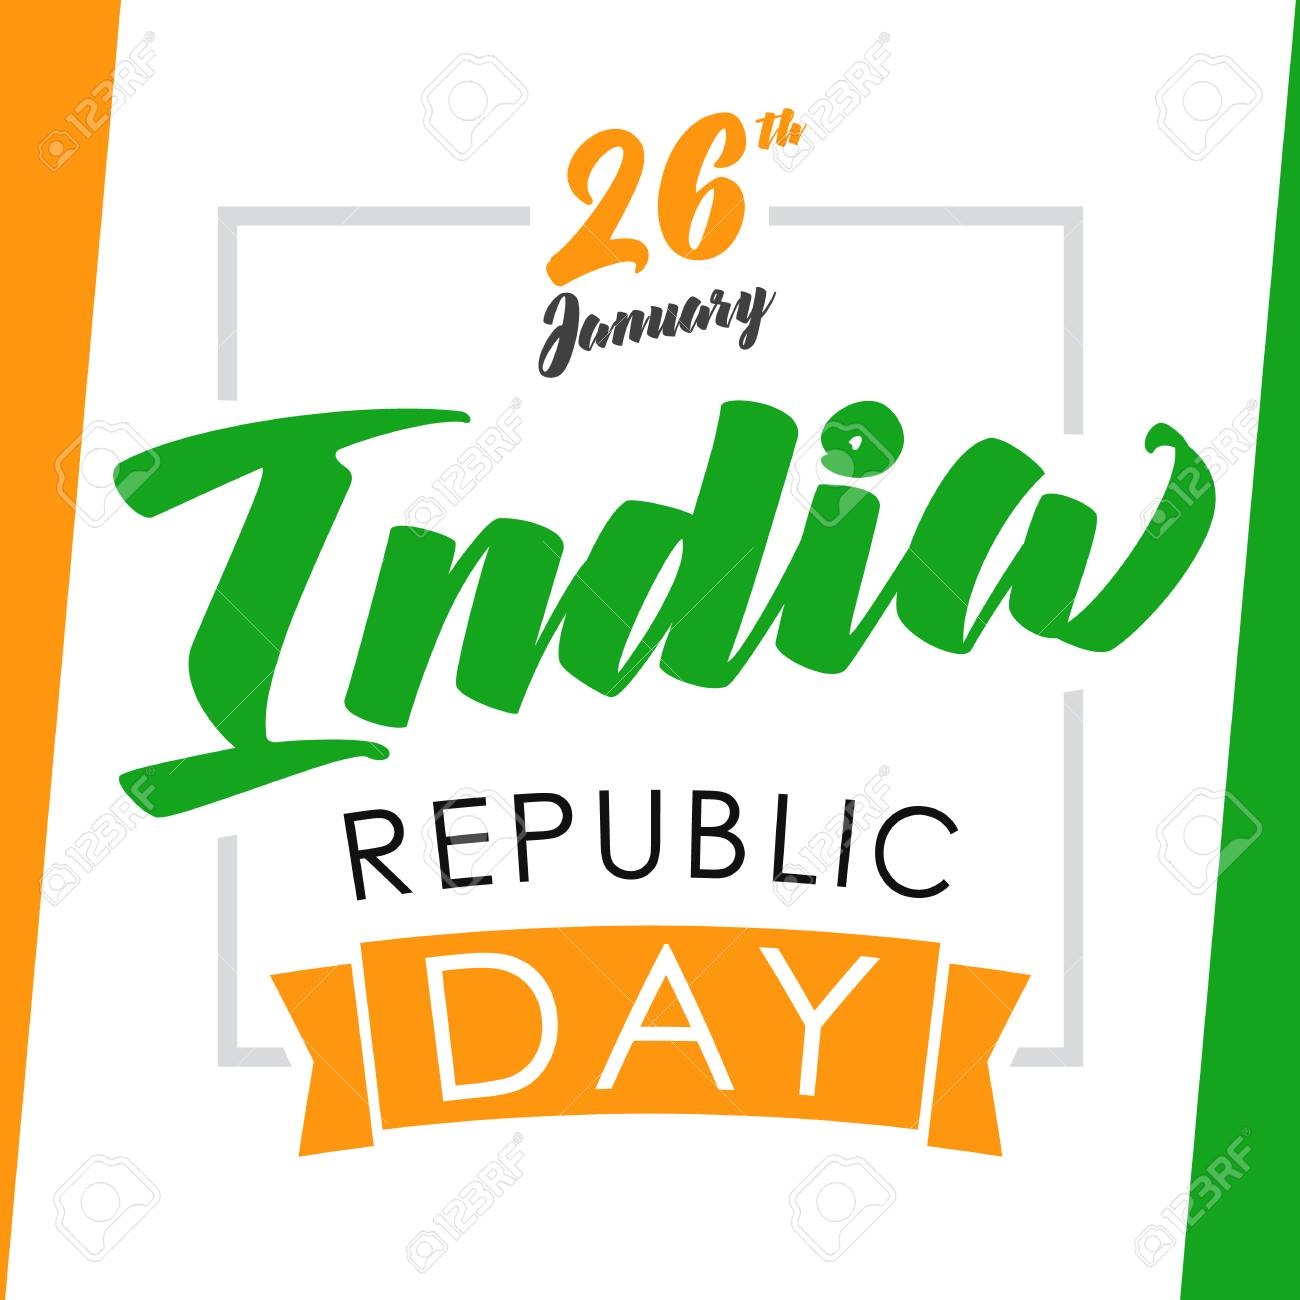 India republic day greeting card happy republic day lettering india republic day greeting card happy republic day lettering background design 26th january on m4hsunfo